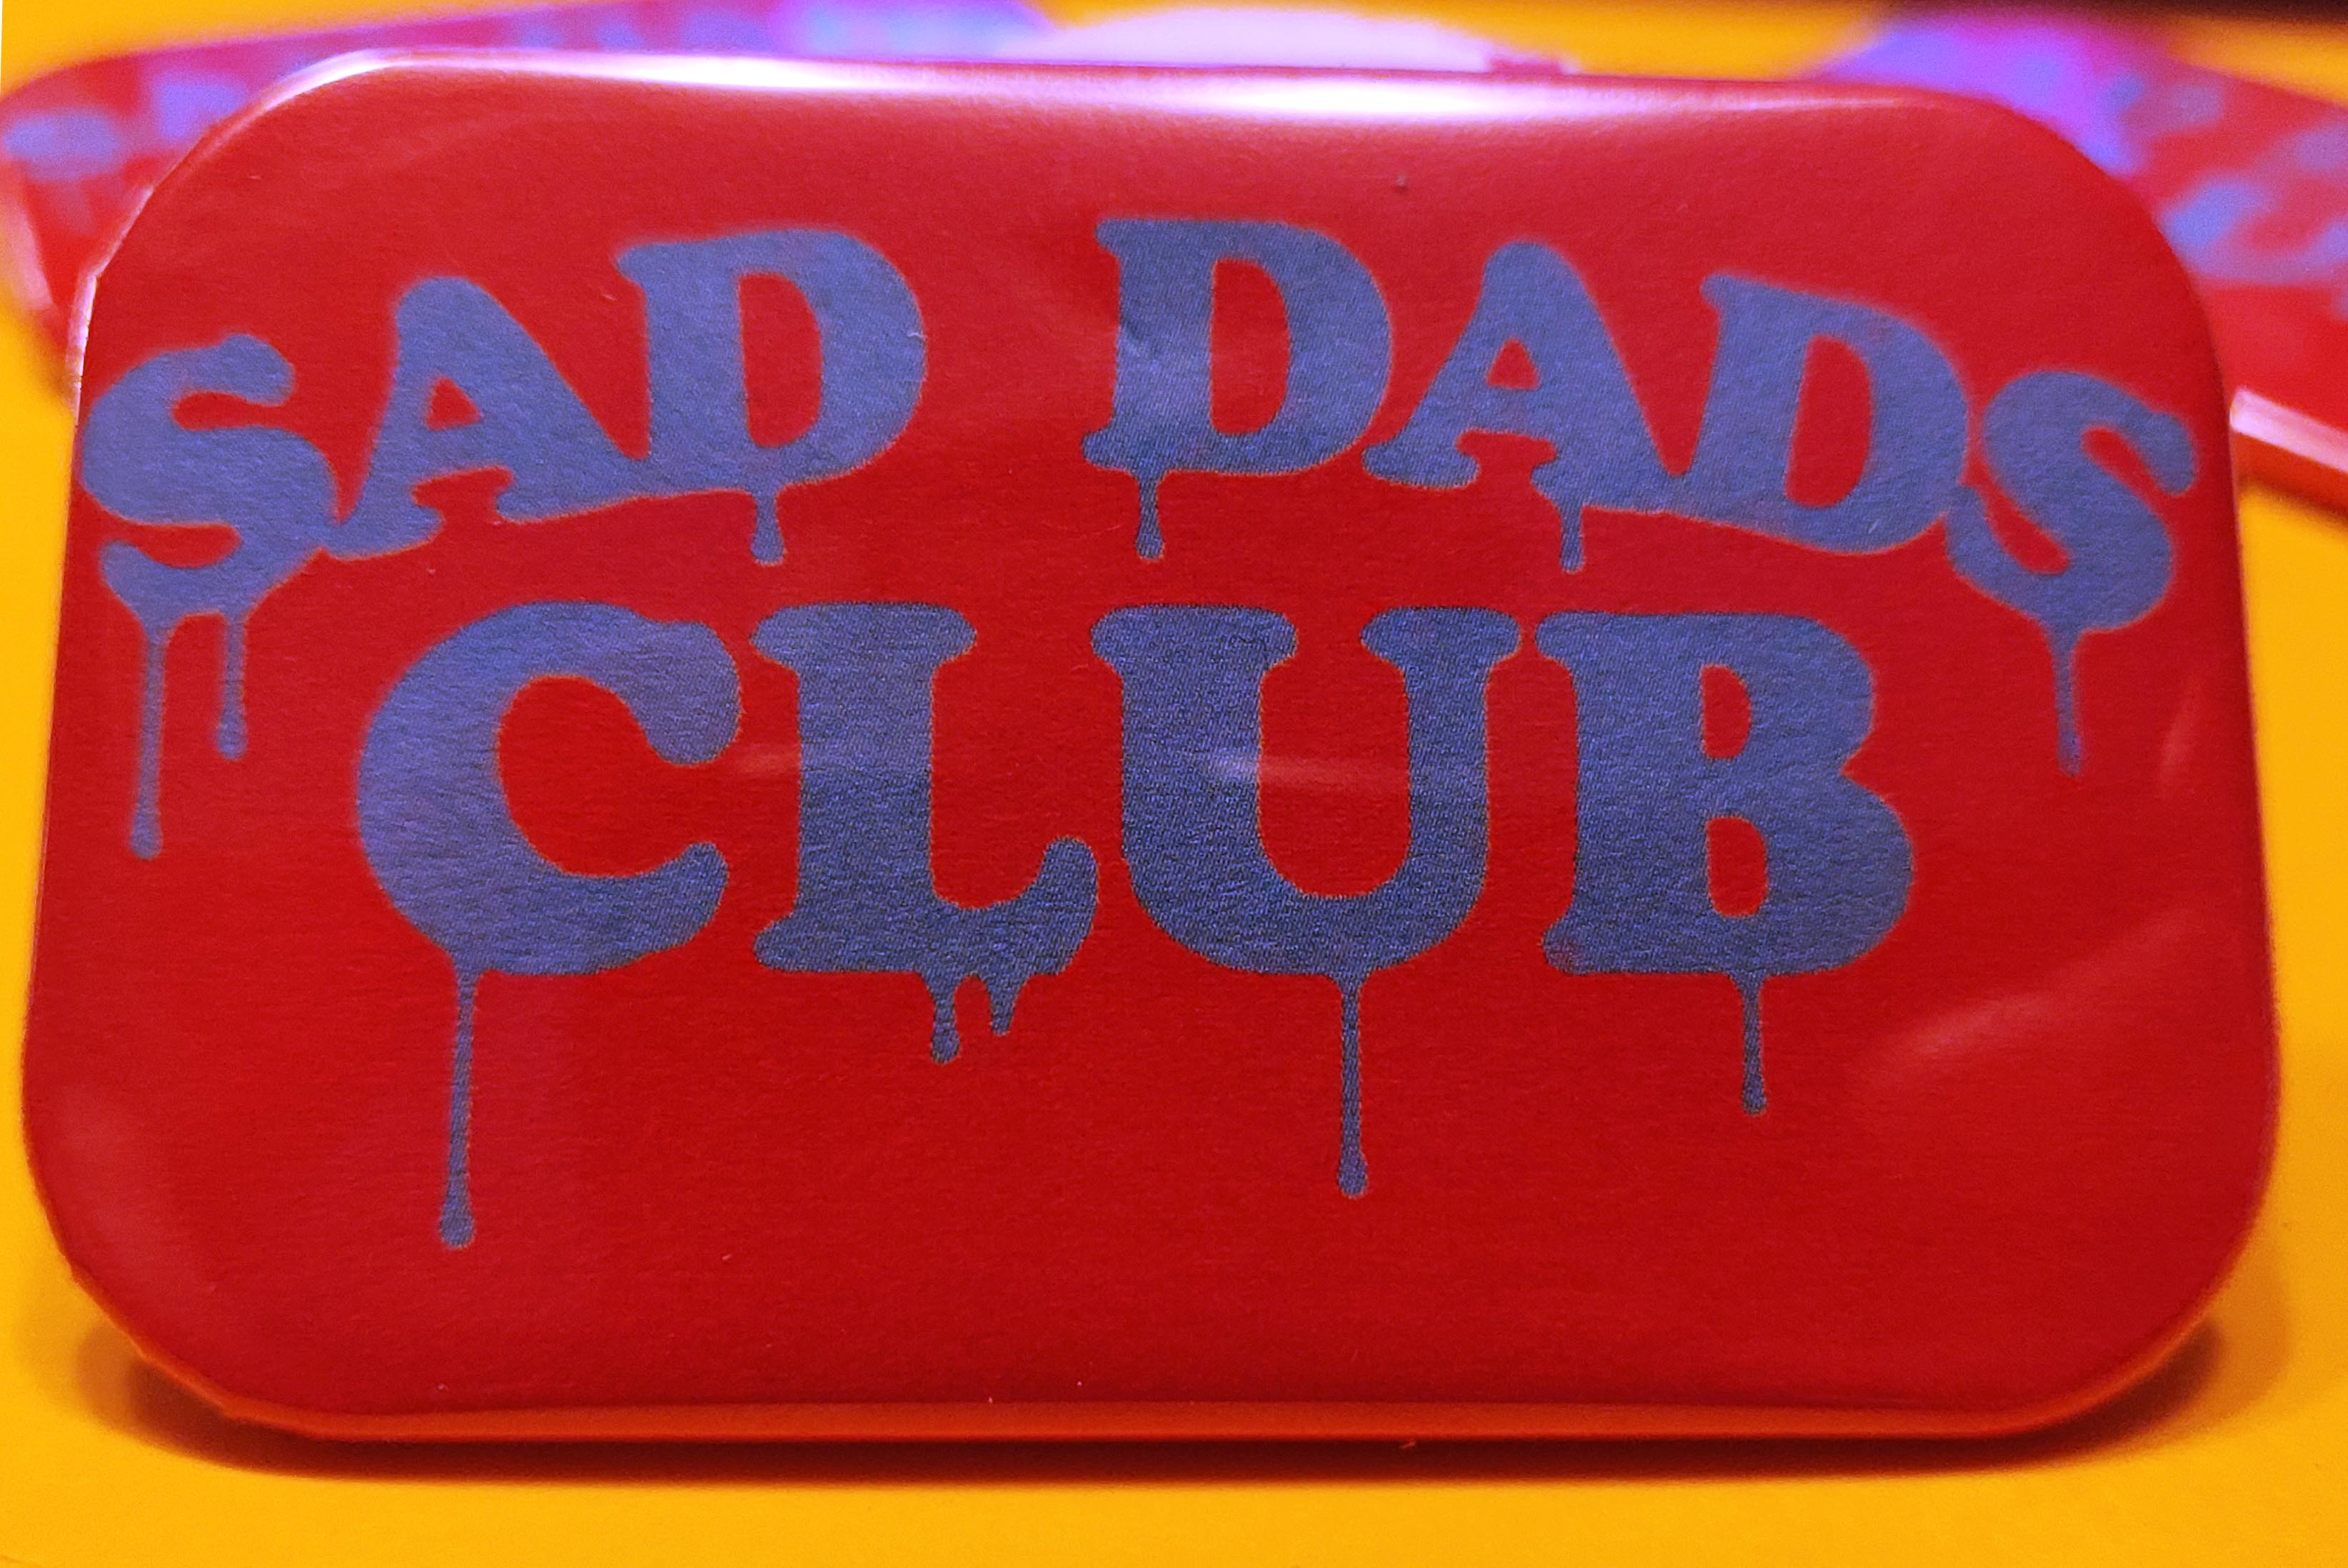 'Sad Dads Club' rectangular trad-badge